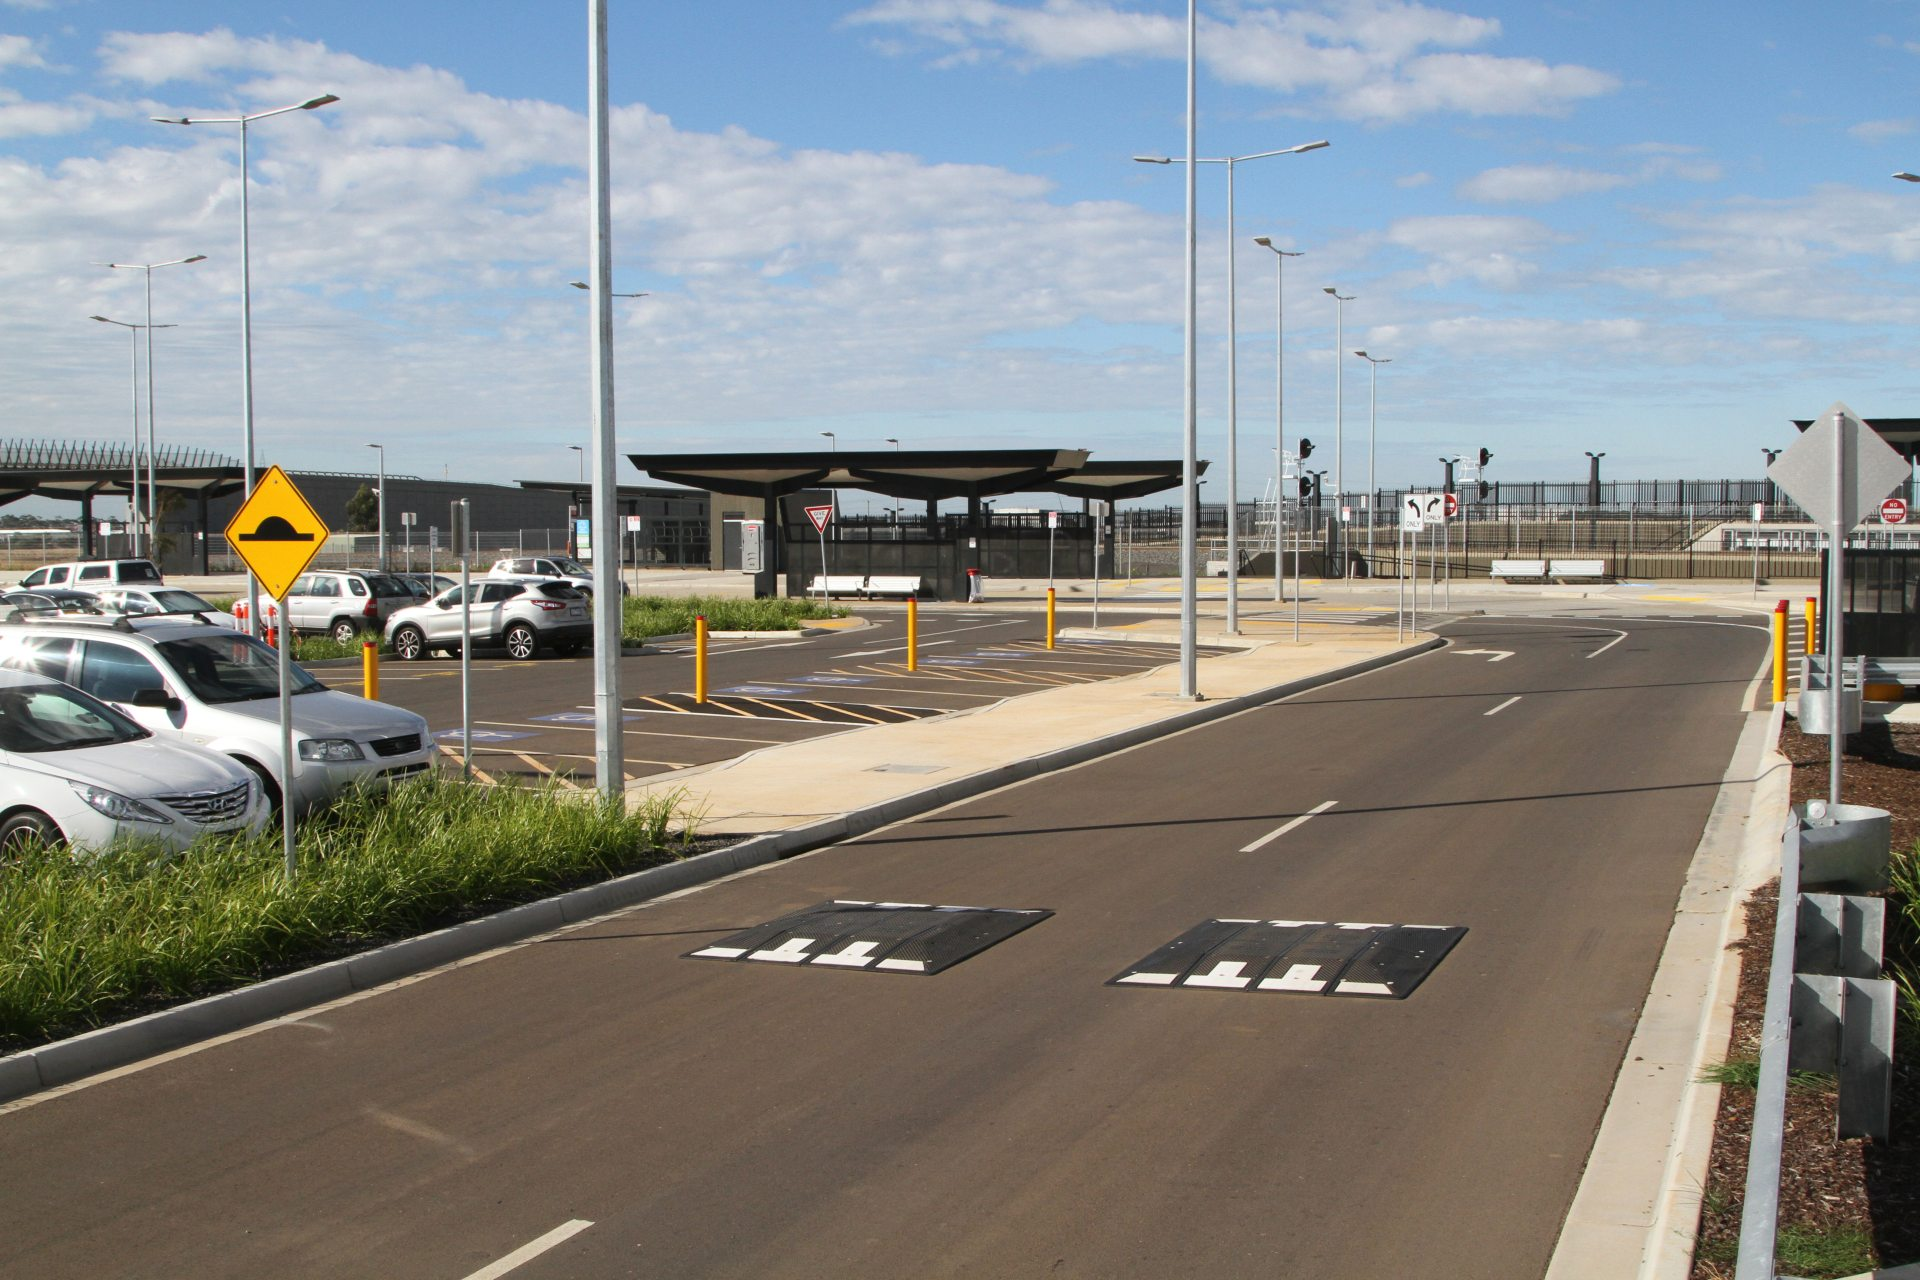 Rail Geelong Gallery Access Road At The Caroline Springs Station Car Park